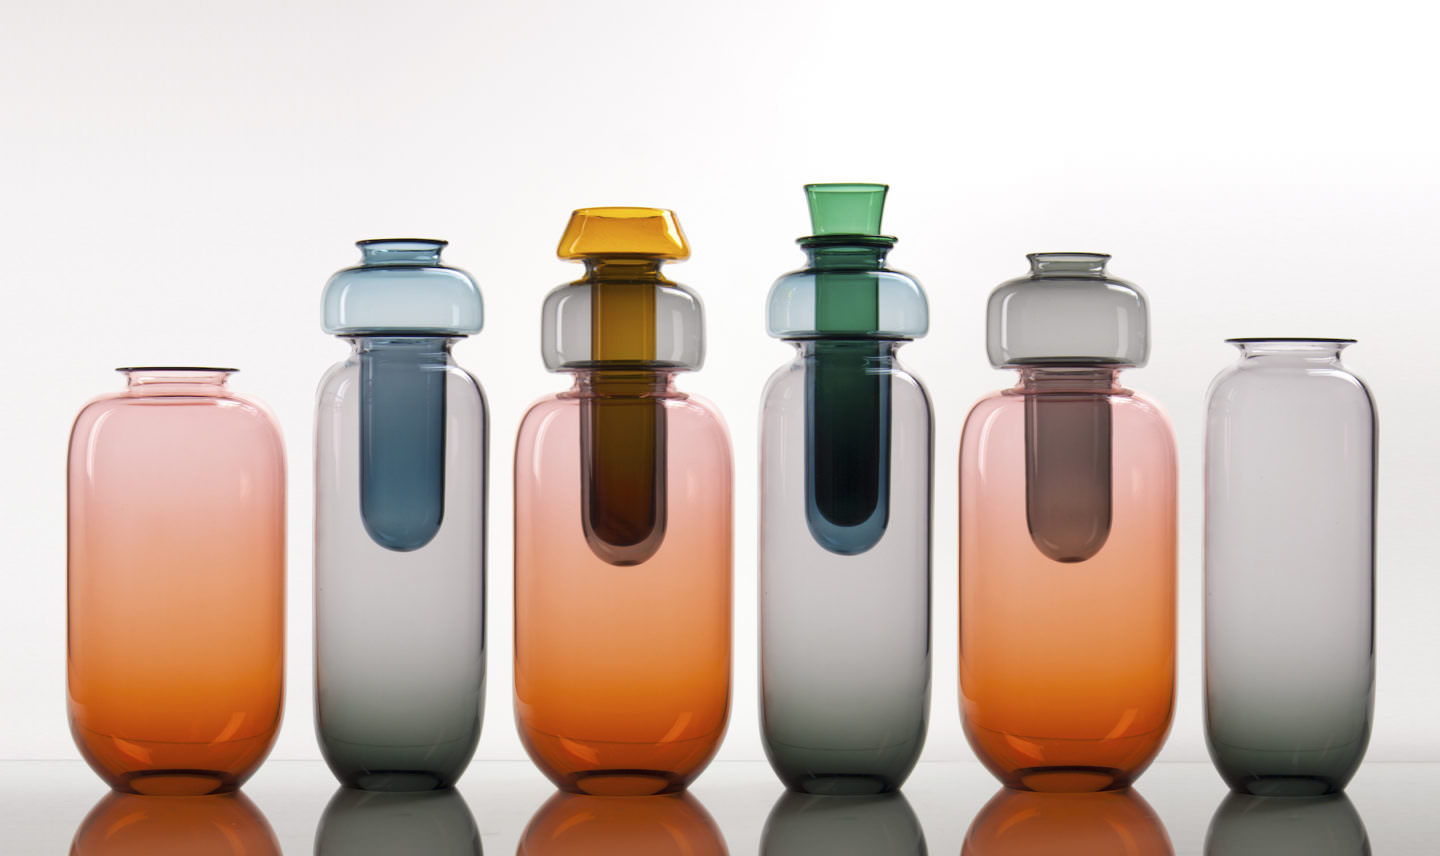 Glass Vessels by Brad Turner titled Redundant Vessels